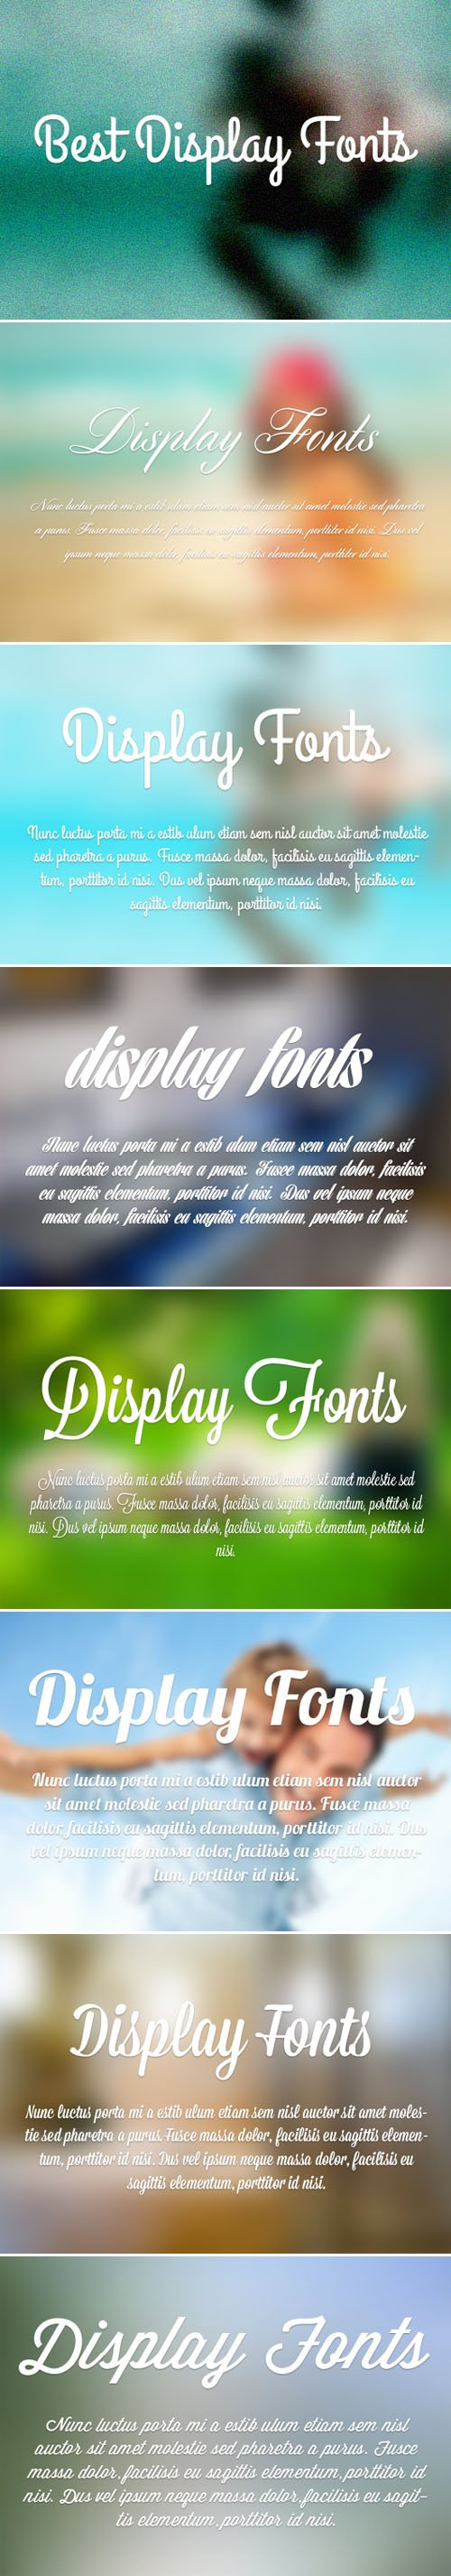 Best 7 Display Fonts Collection for Designers